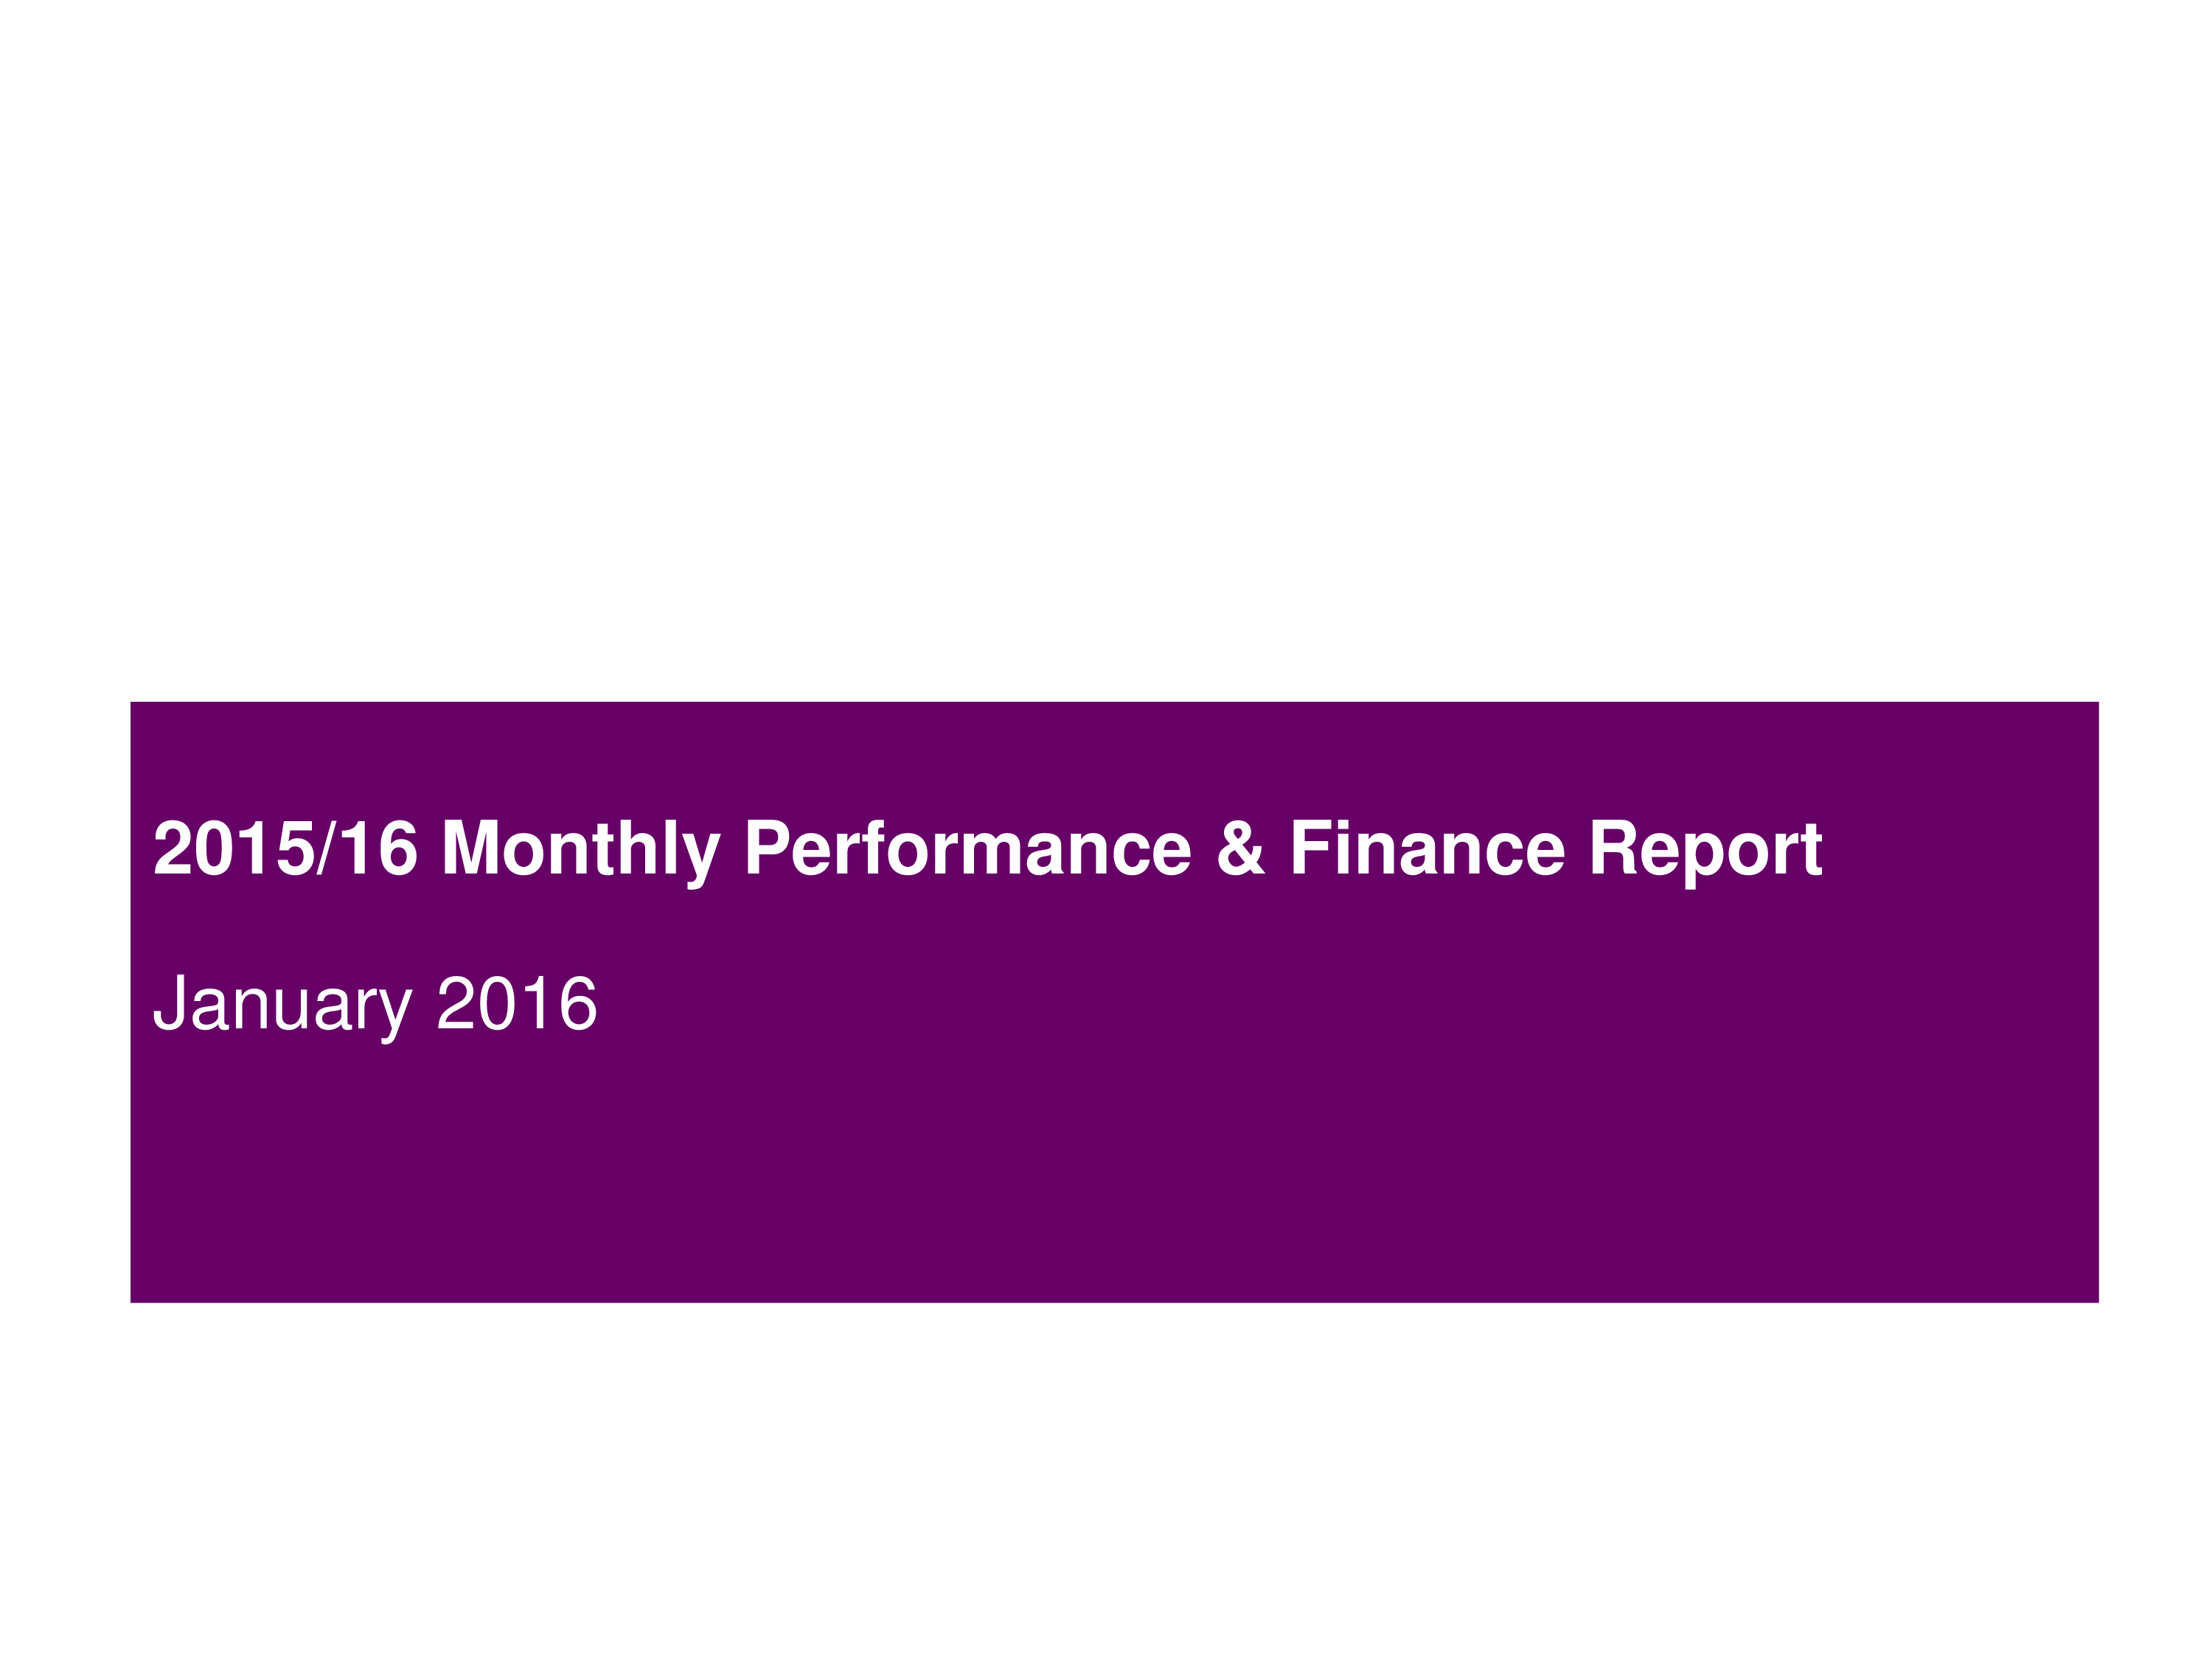 Monthly Performance Report main image